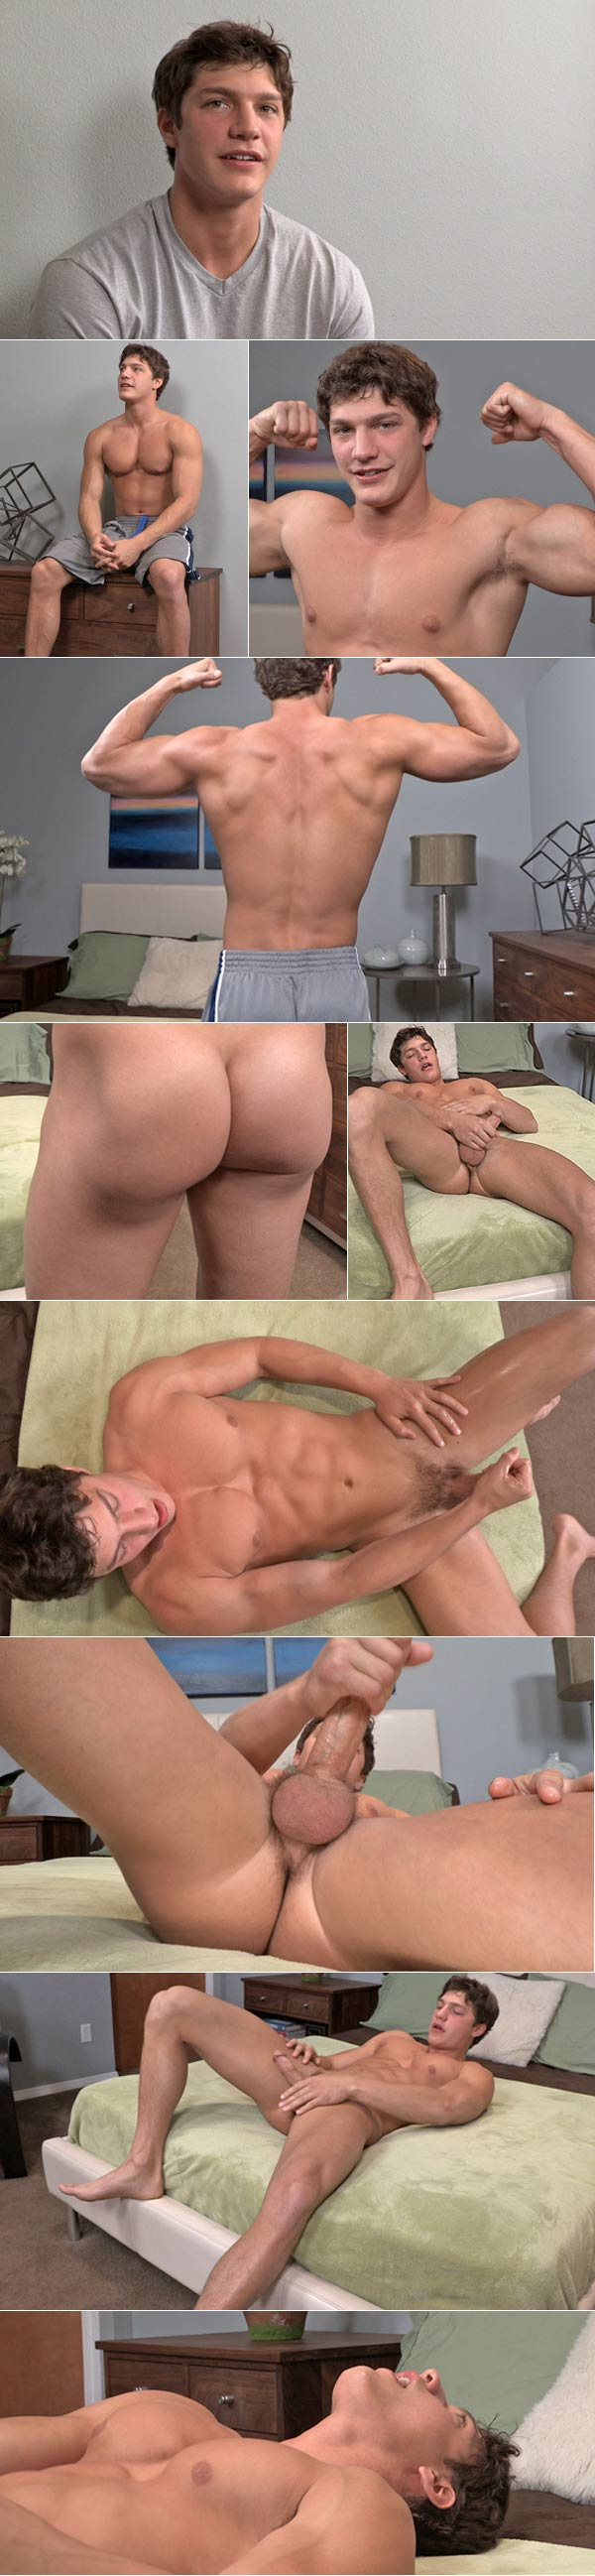 Brandon III at SeanCody